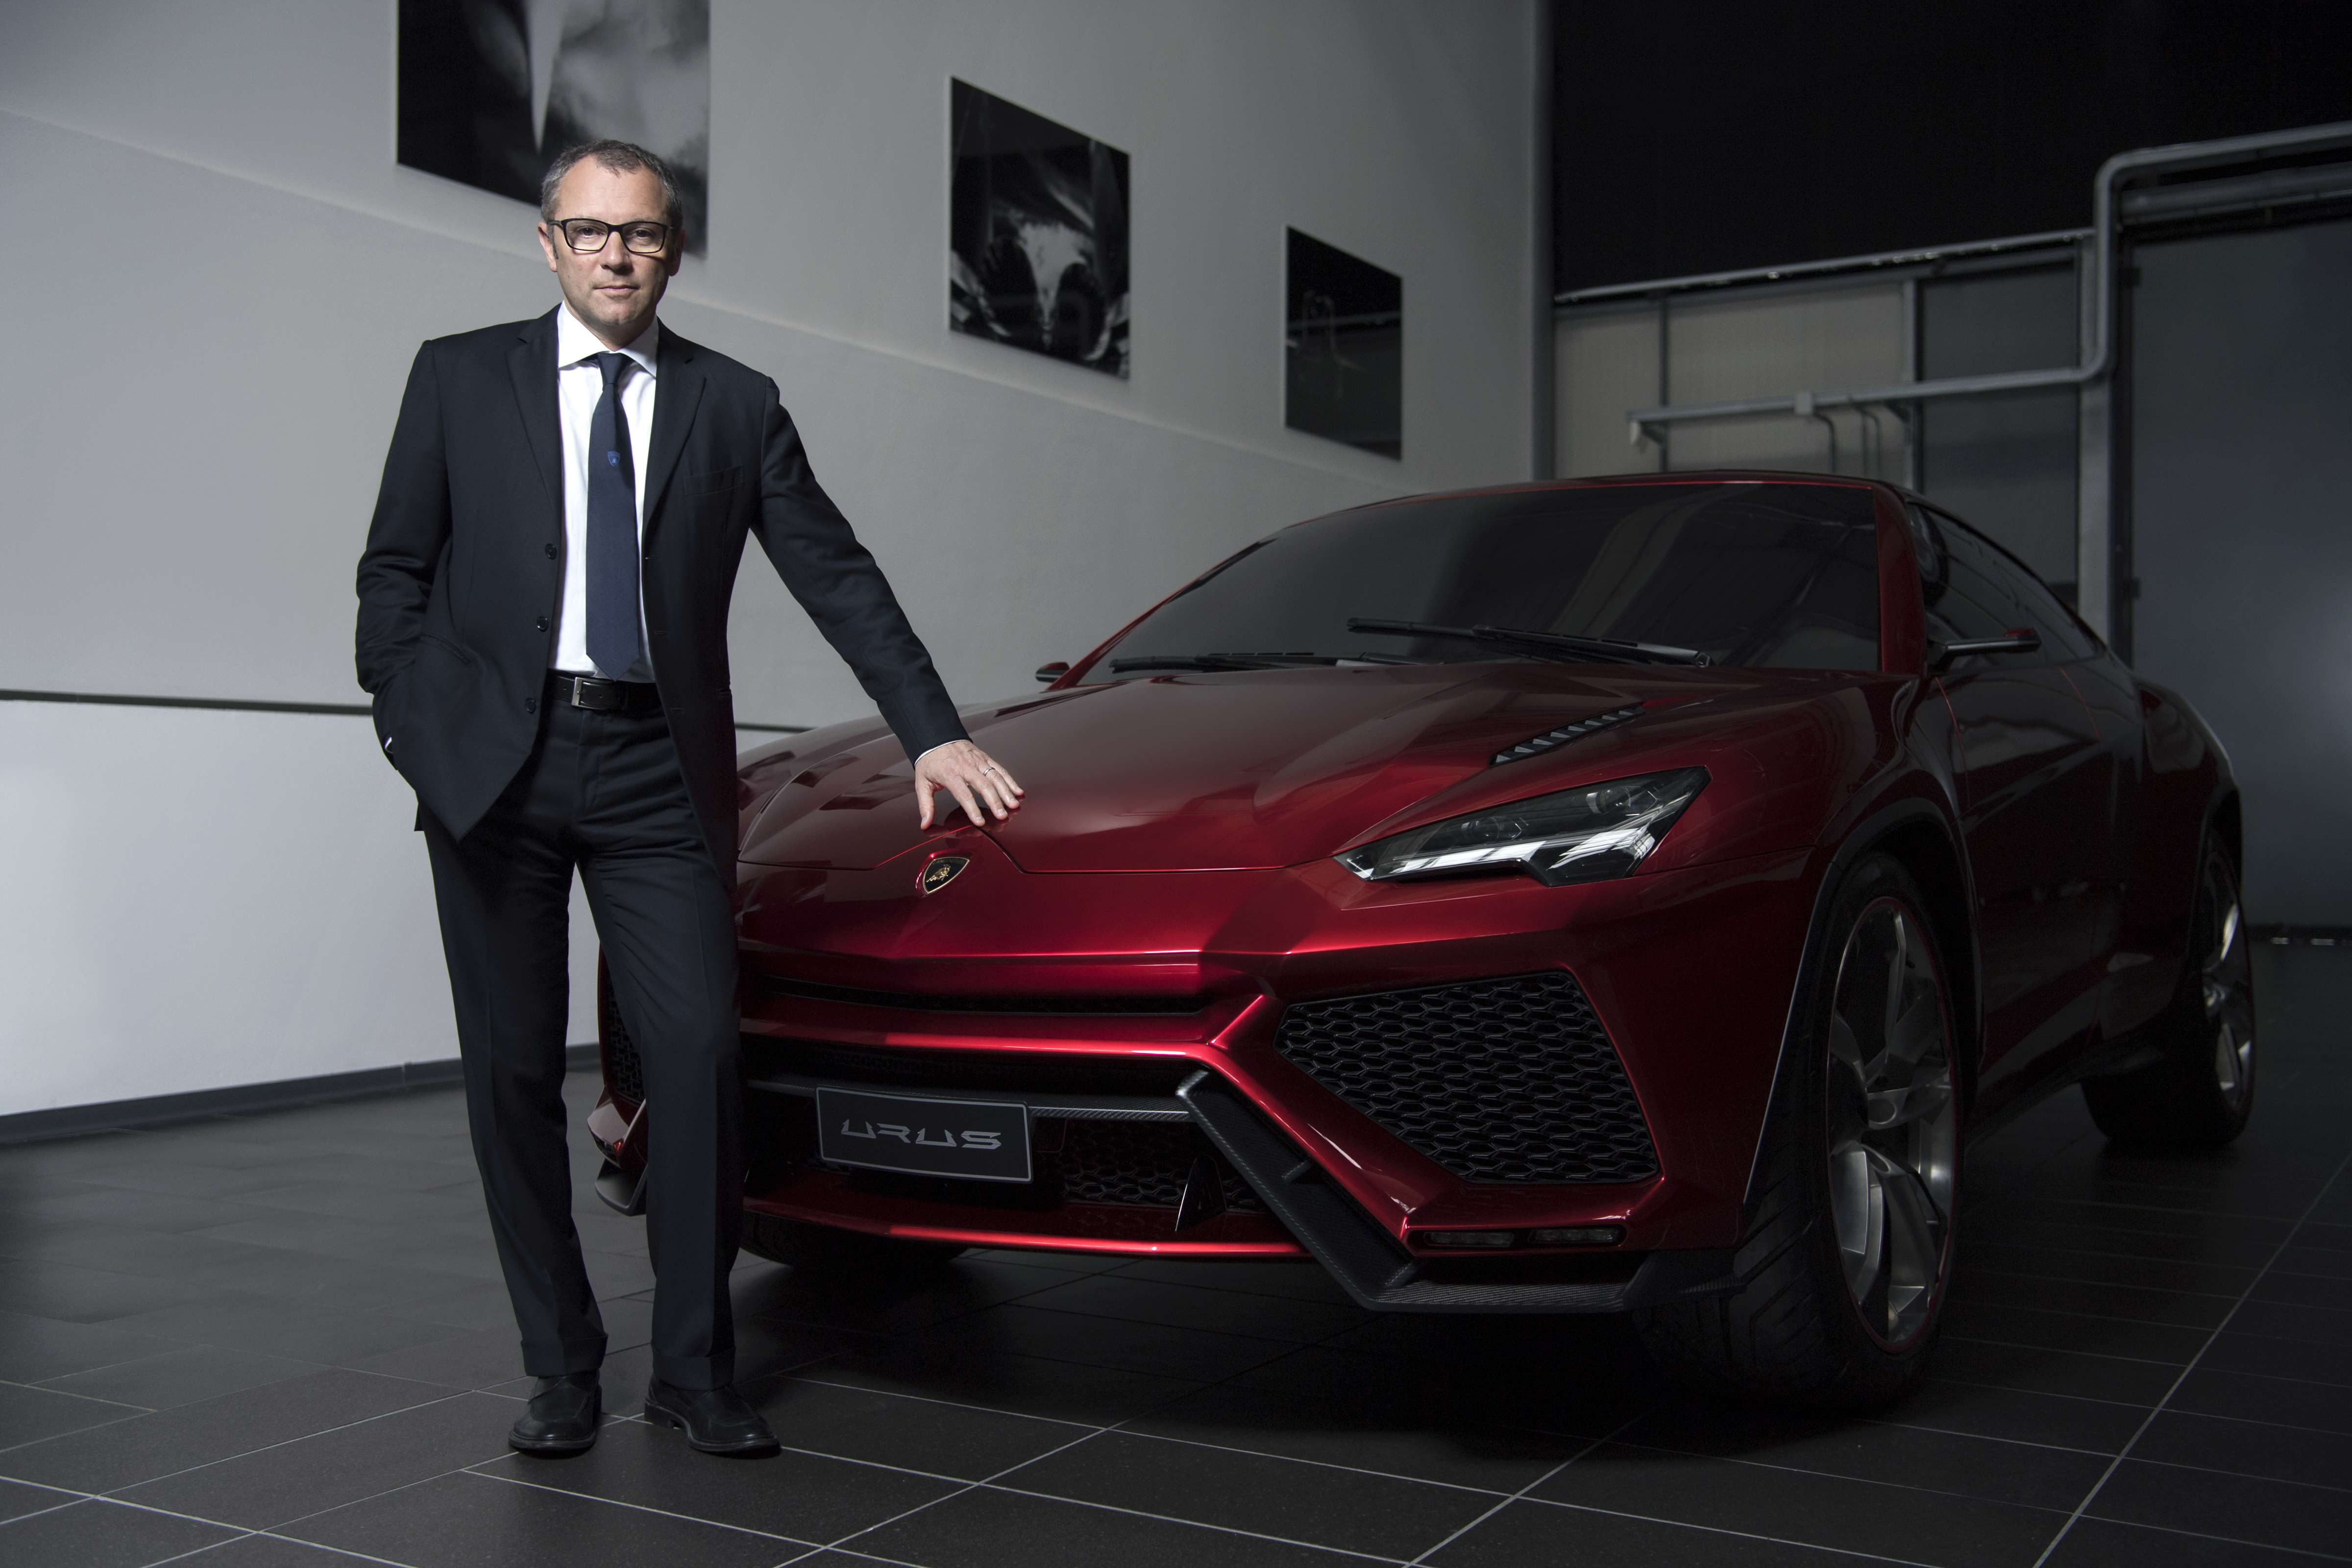 Automobili Lamborghini Sets Another Record in 2016